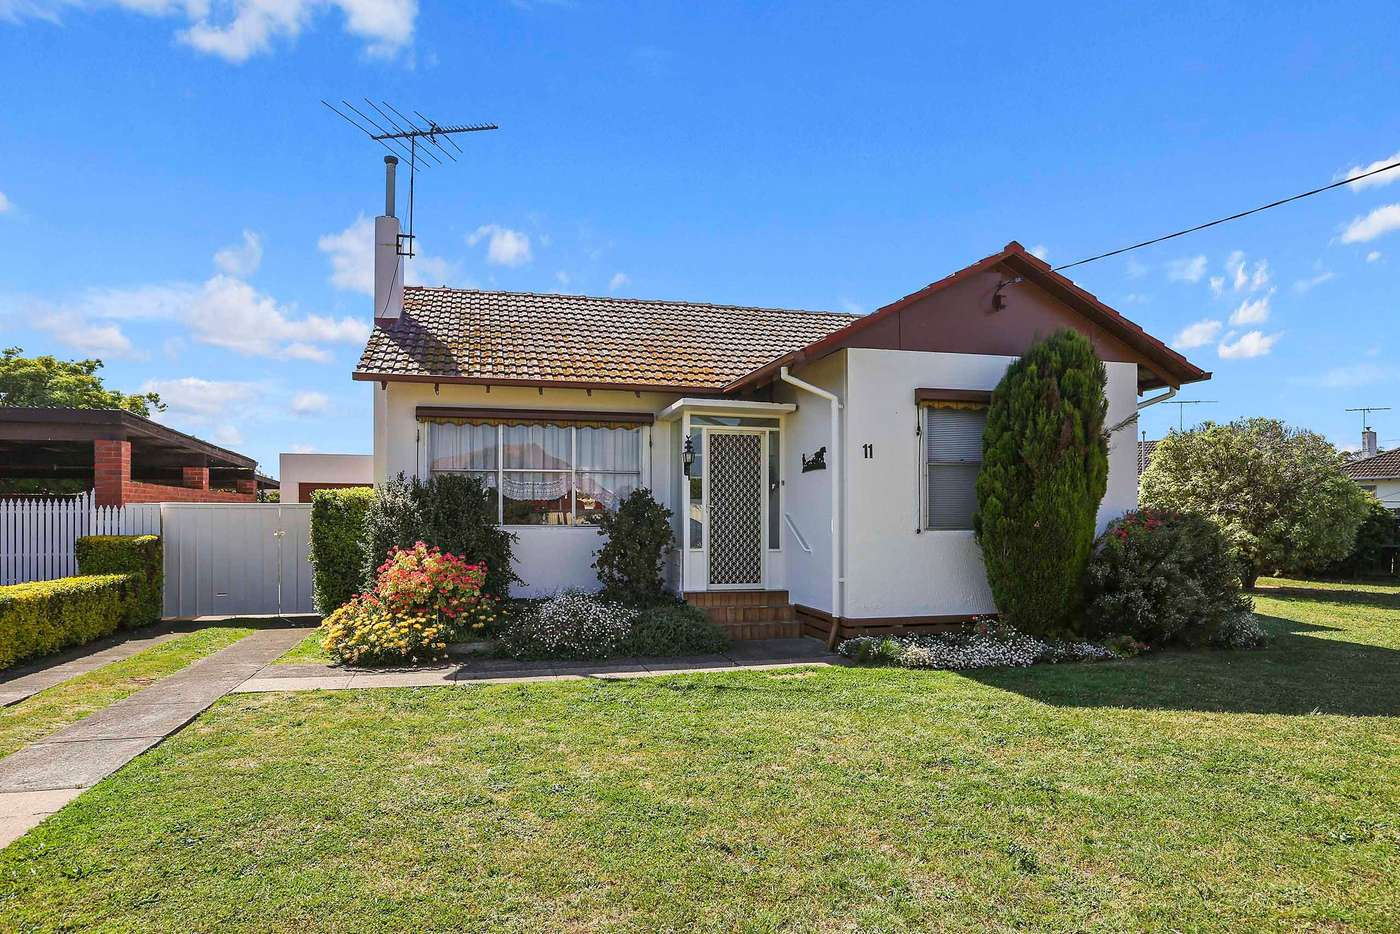 Main view of Homely house listing, 11 Michigan Avenue, Corio, VIC 3214